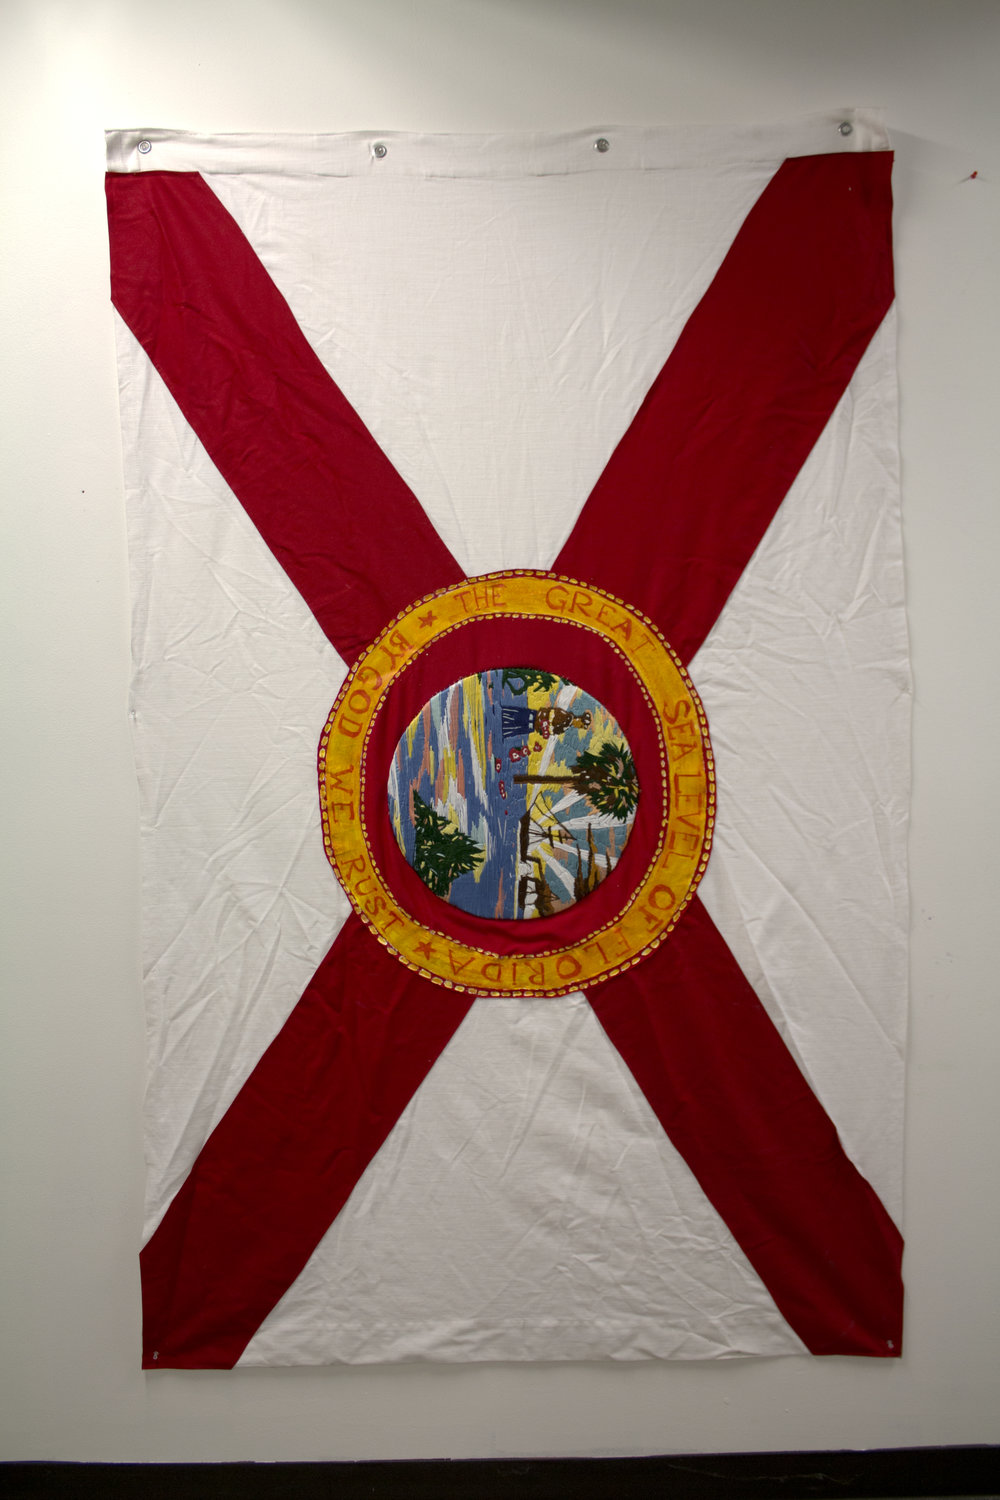 The Great Sealevel of Florida  Thread, embroidery floss, acrylic, fabric, grommets 4'x6'